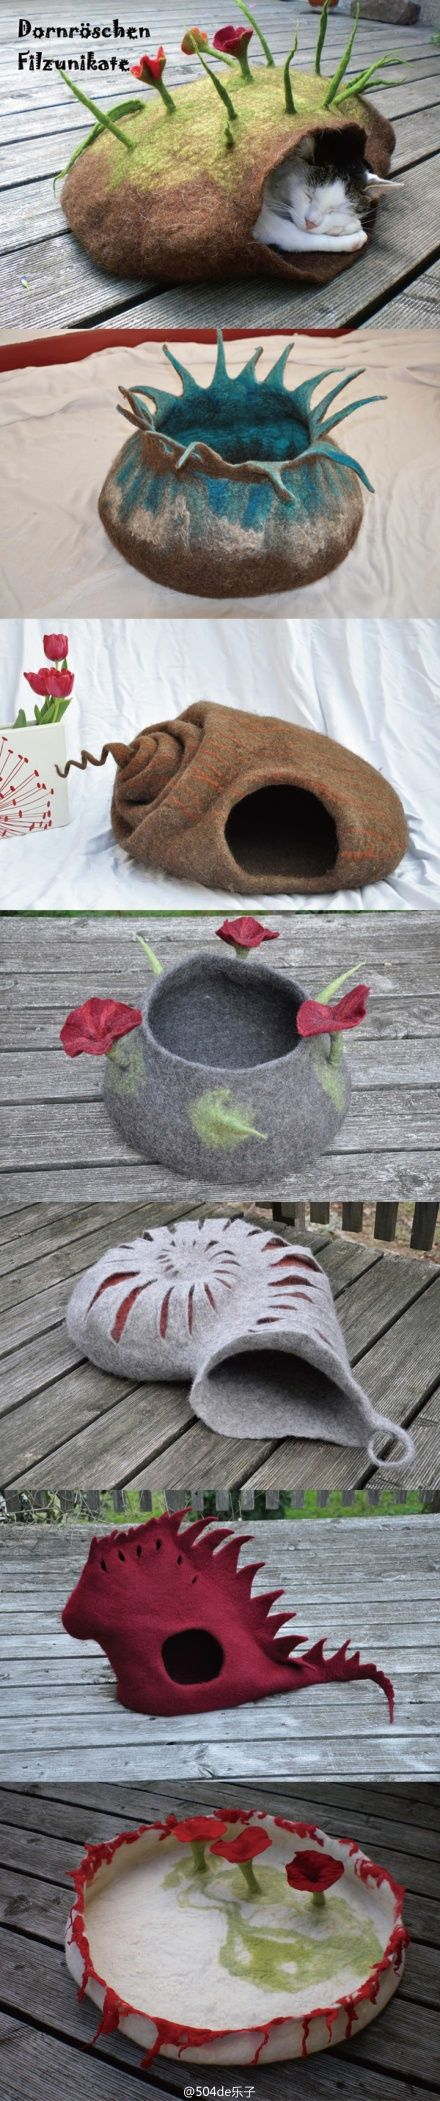 felt cat beds  Would love to learn to do felting so I could make these